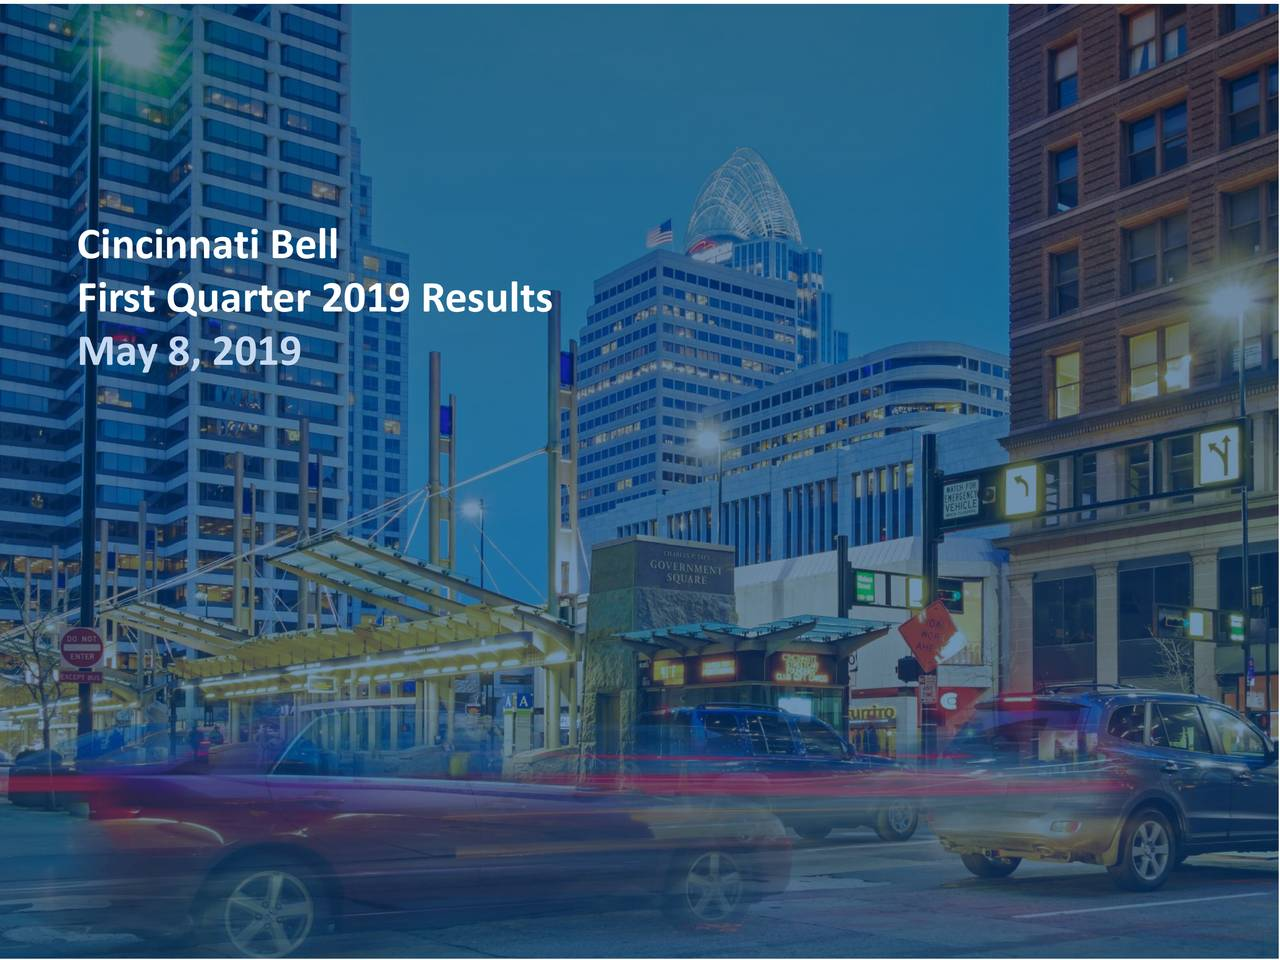 First Quarter 2019 Results May 8, 2019